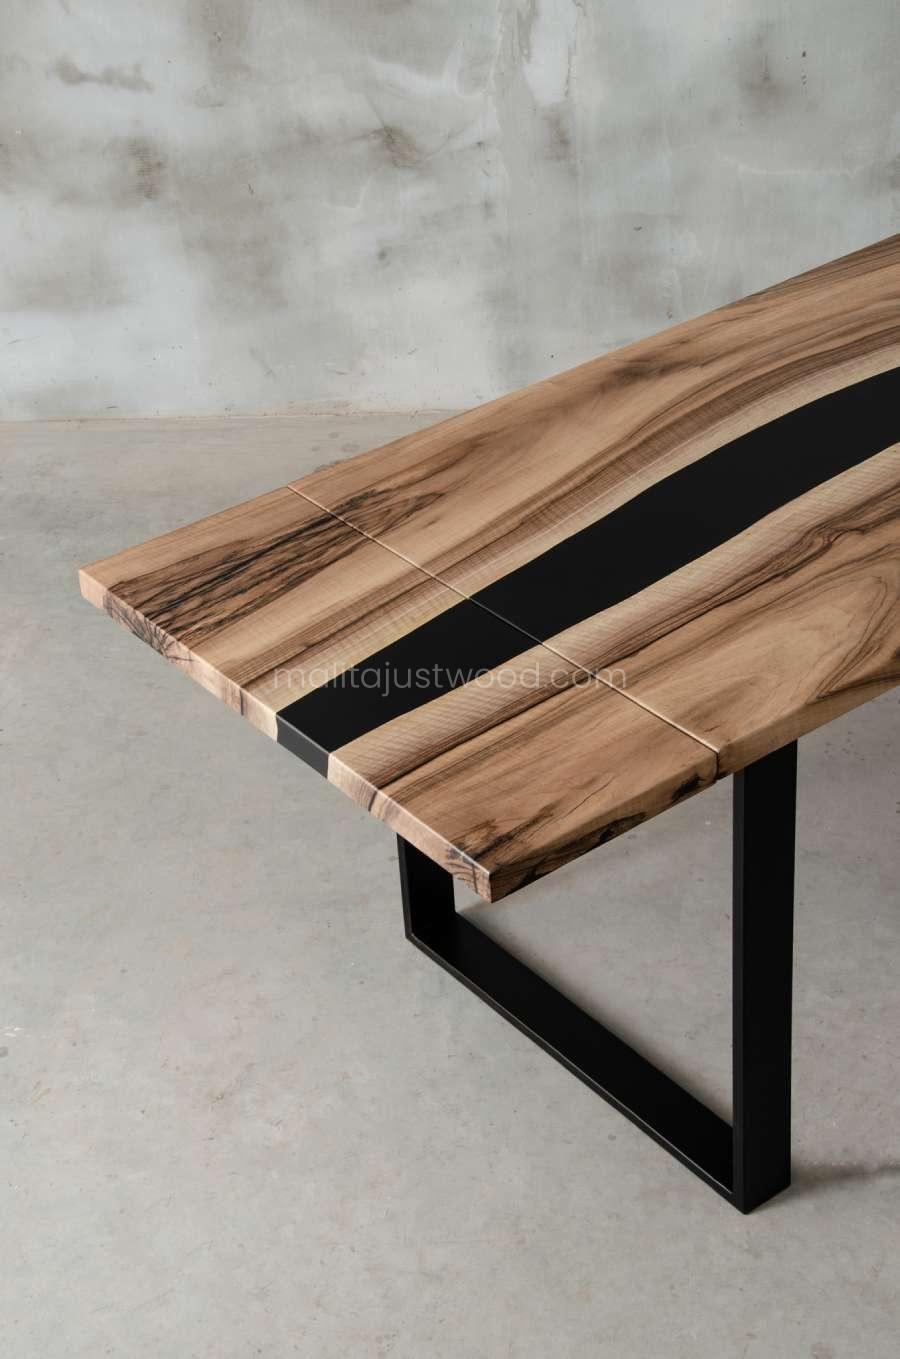 folding table tenens with resin